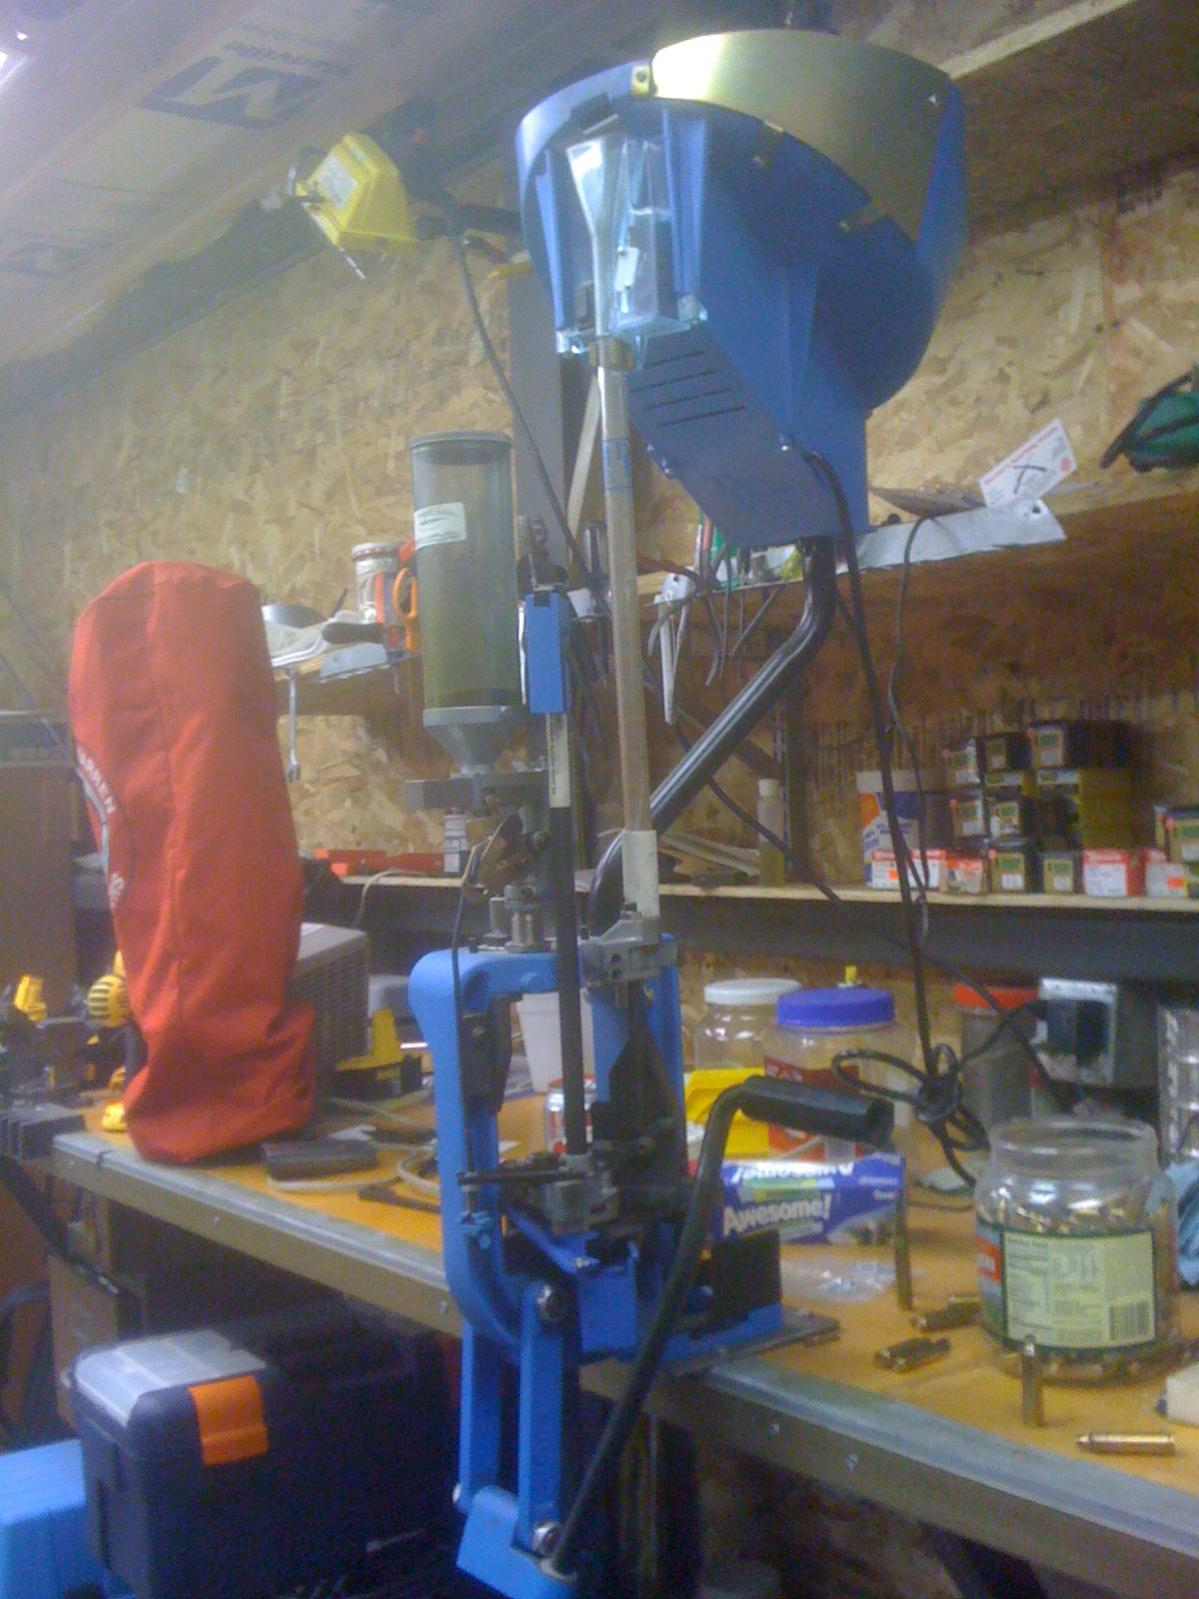 Let's See Your Reloading Bench-094.jpg